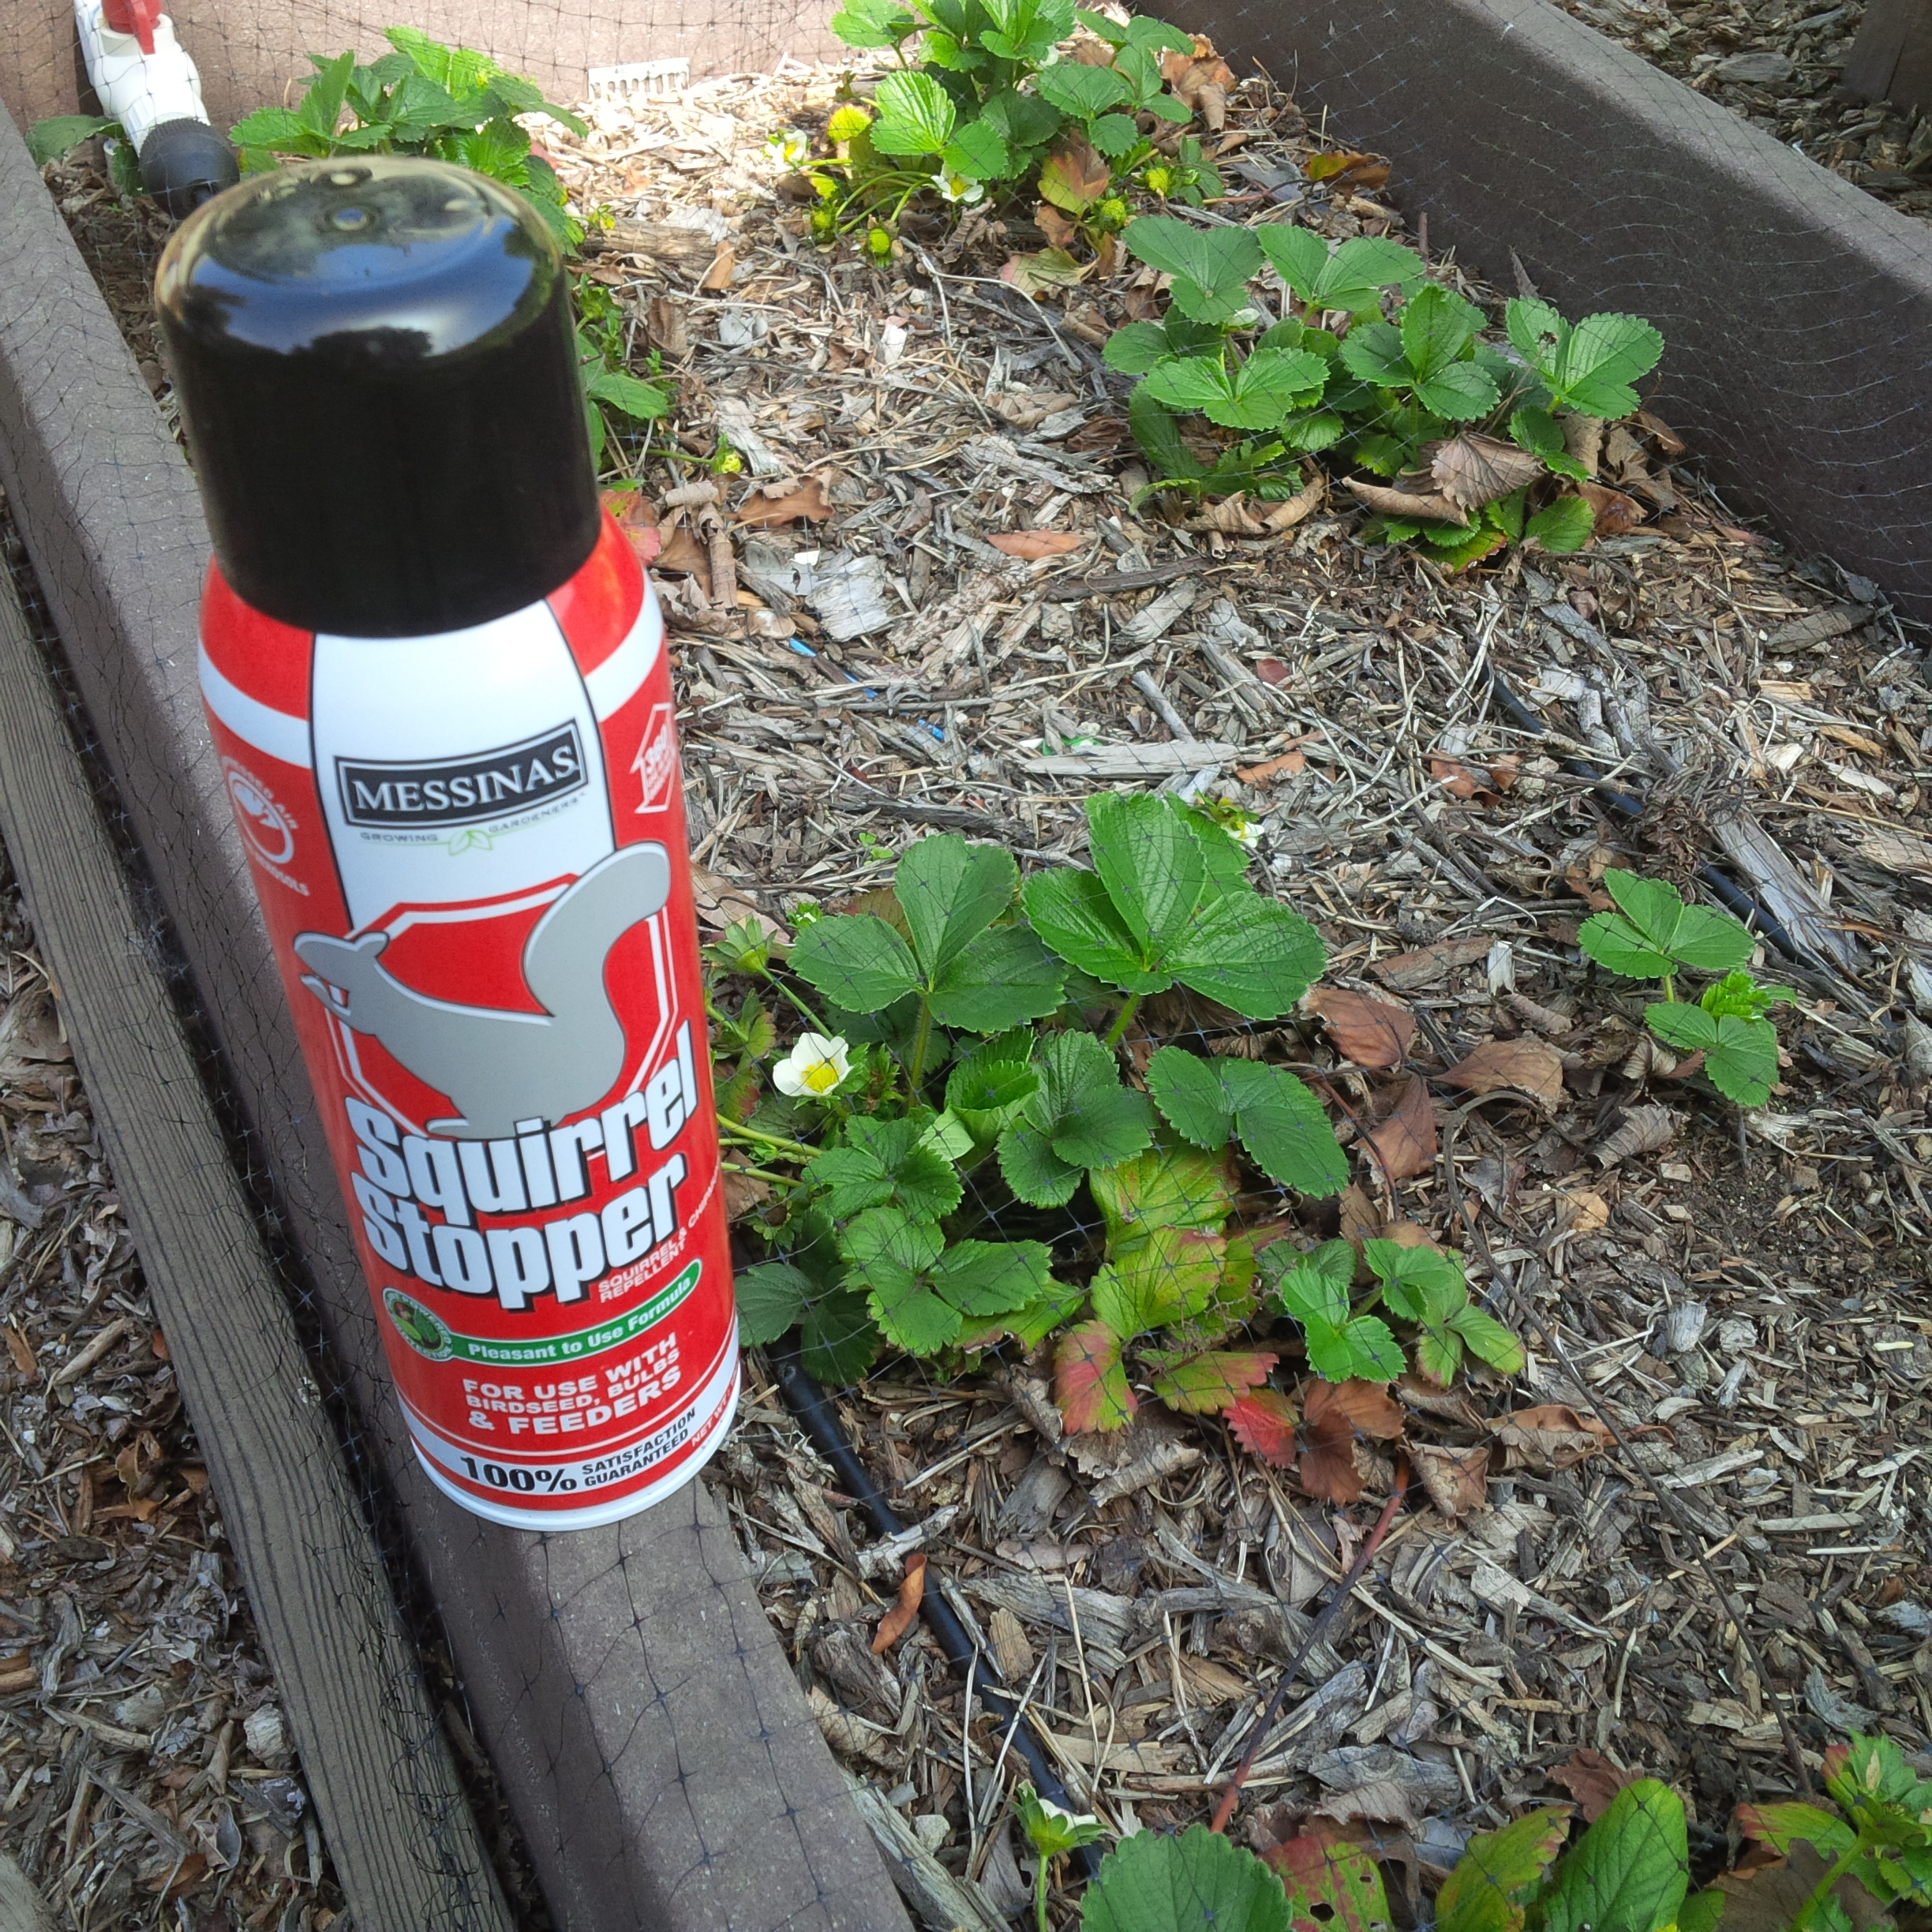 Messinas Squirrel Stopper. We'll give it a try on our strawberry patch.